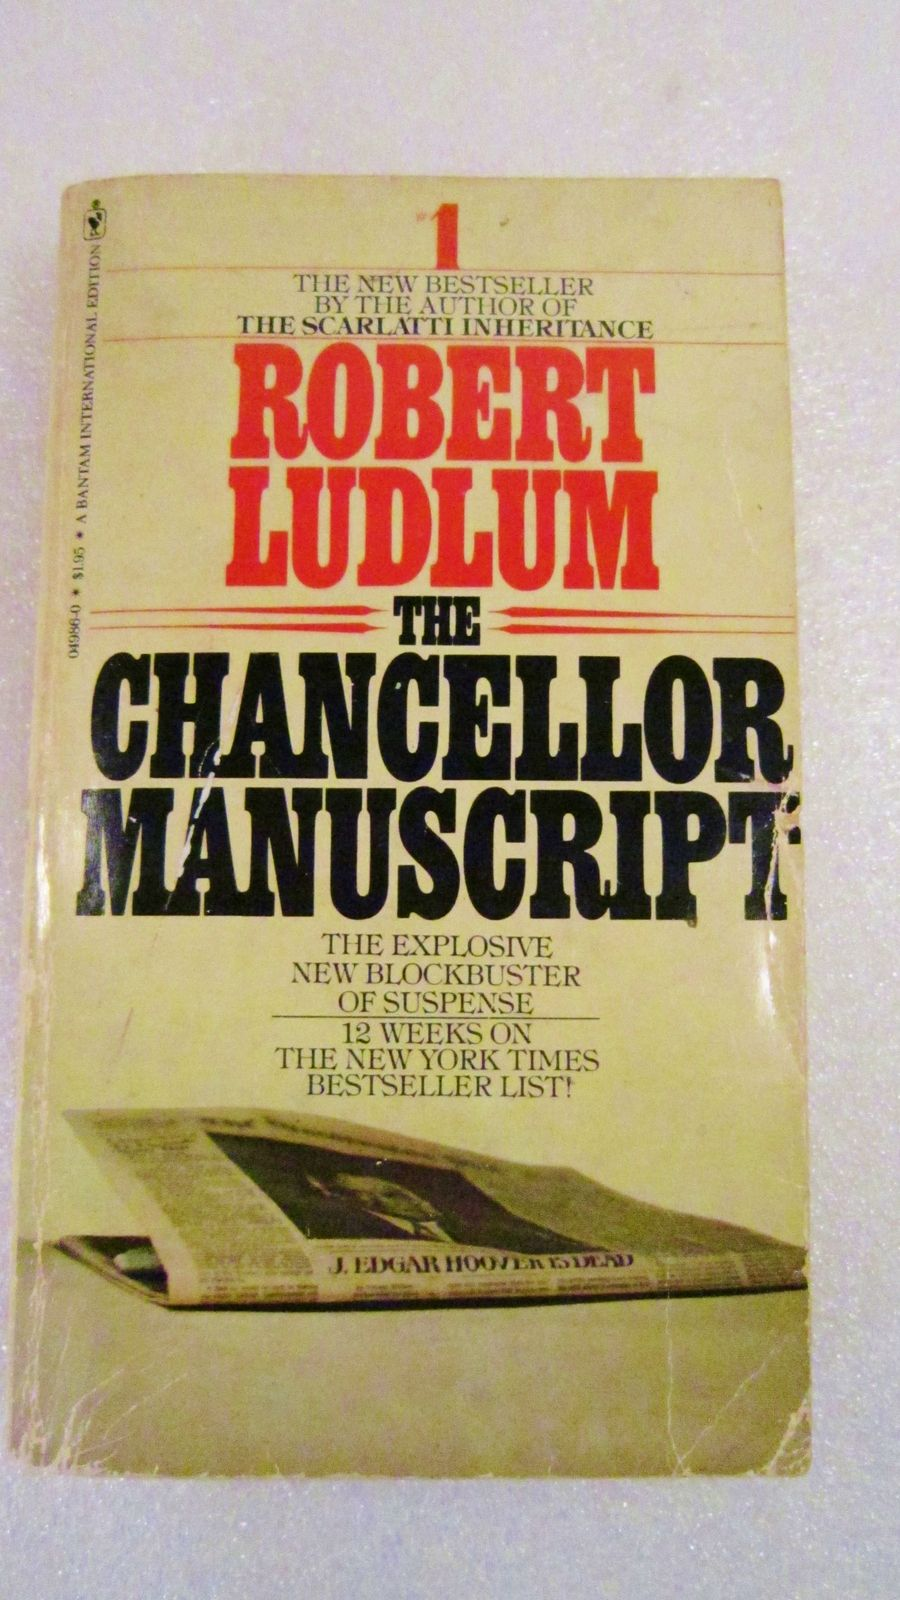 [PDF] The Chancellor Manuscript Book by Robert Ludlum Free Download (448 pages)